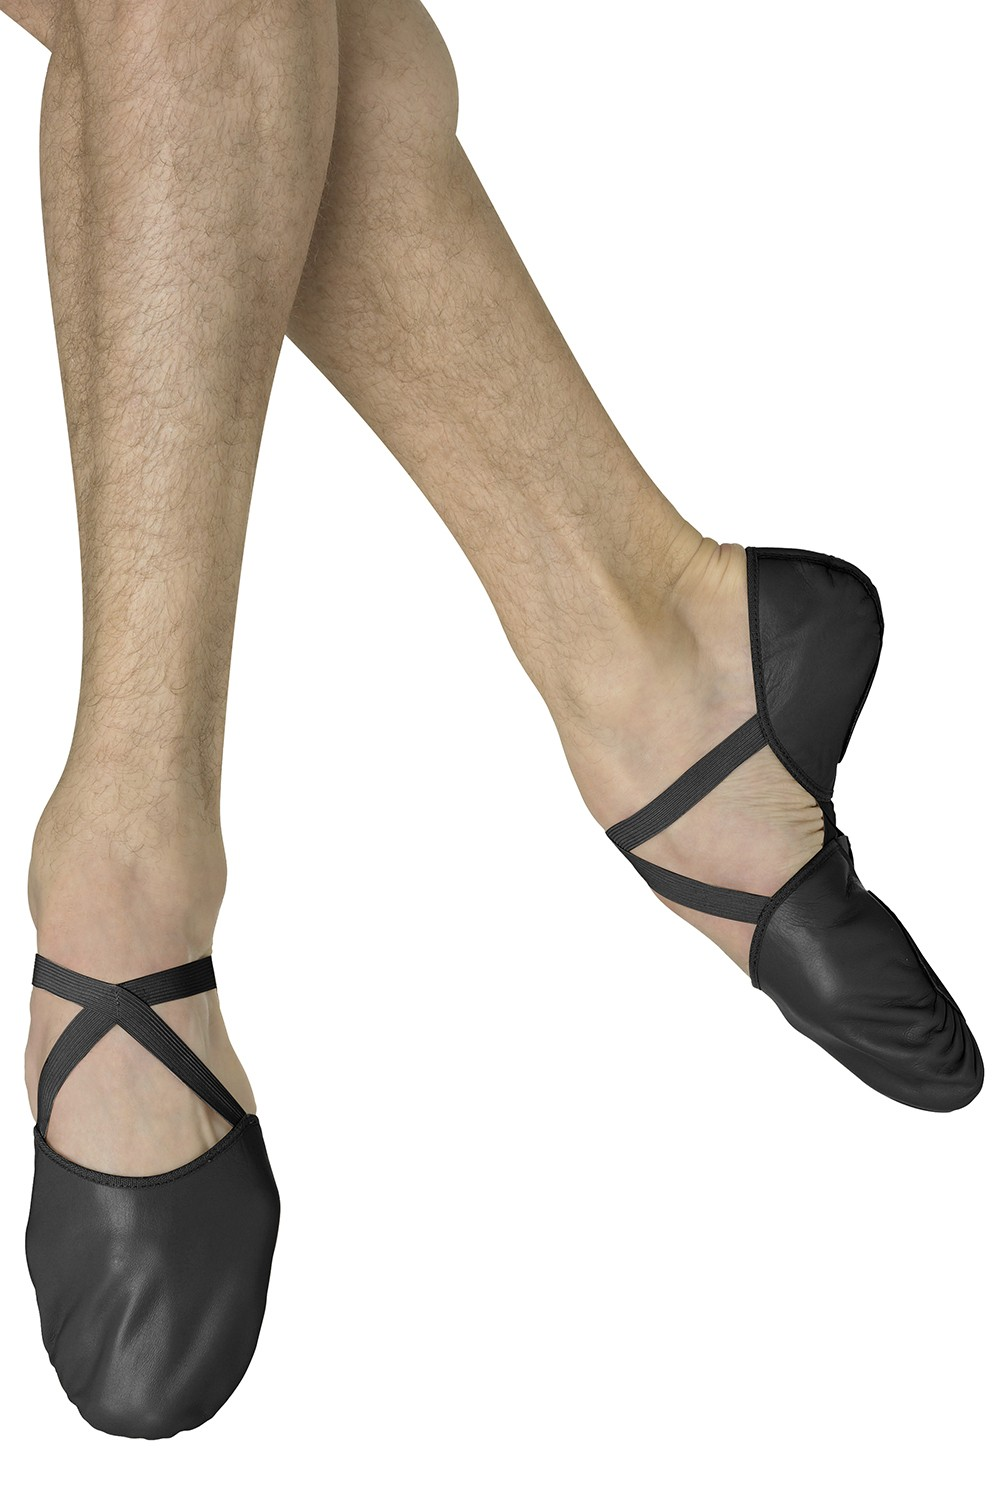 Elastosplit X (leather) Men's Ballet Shoes